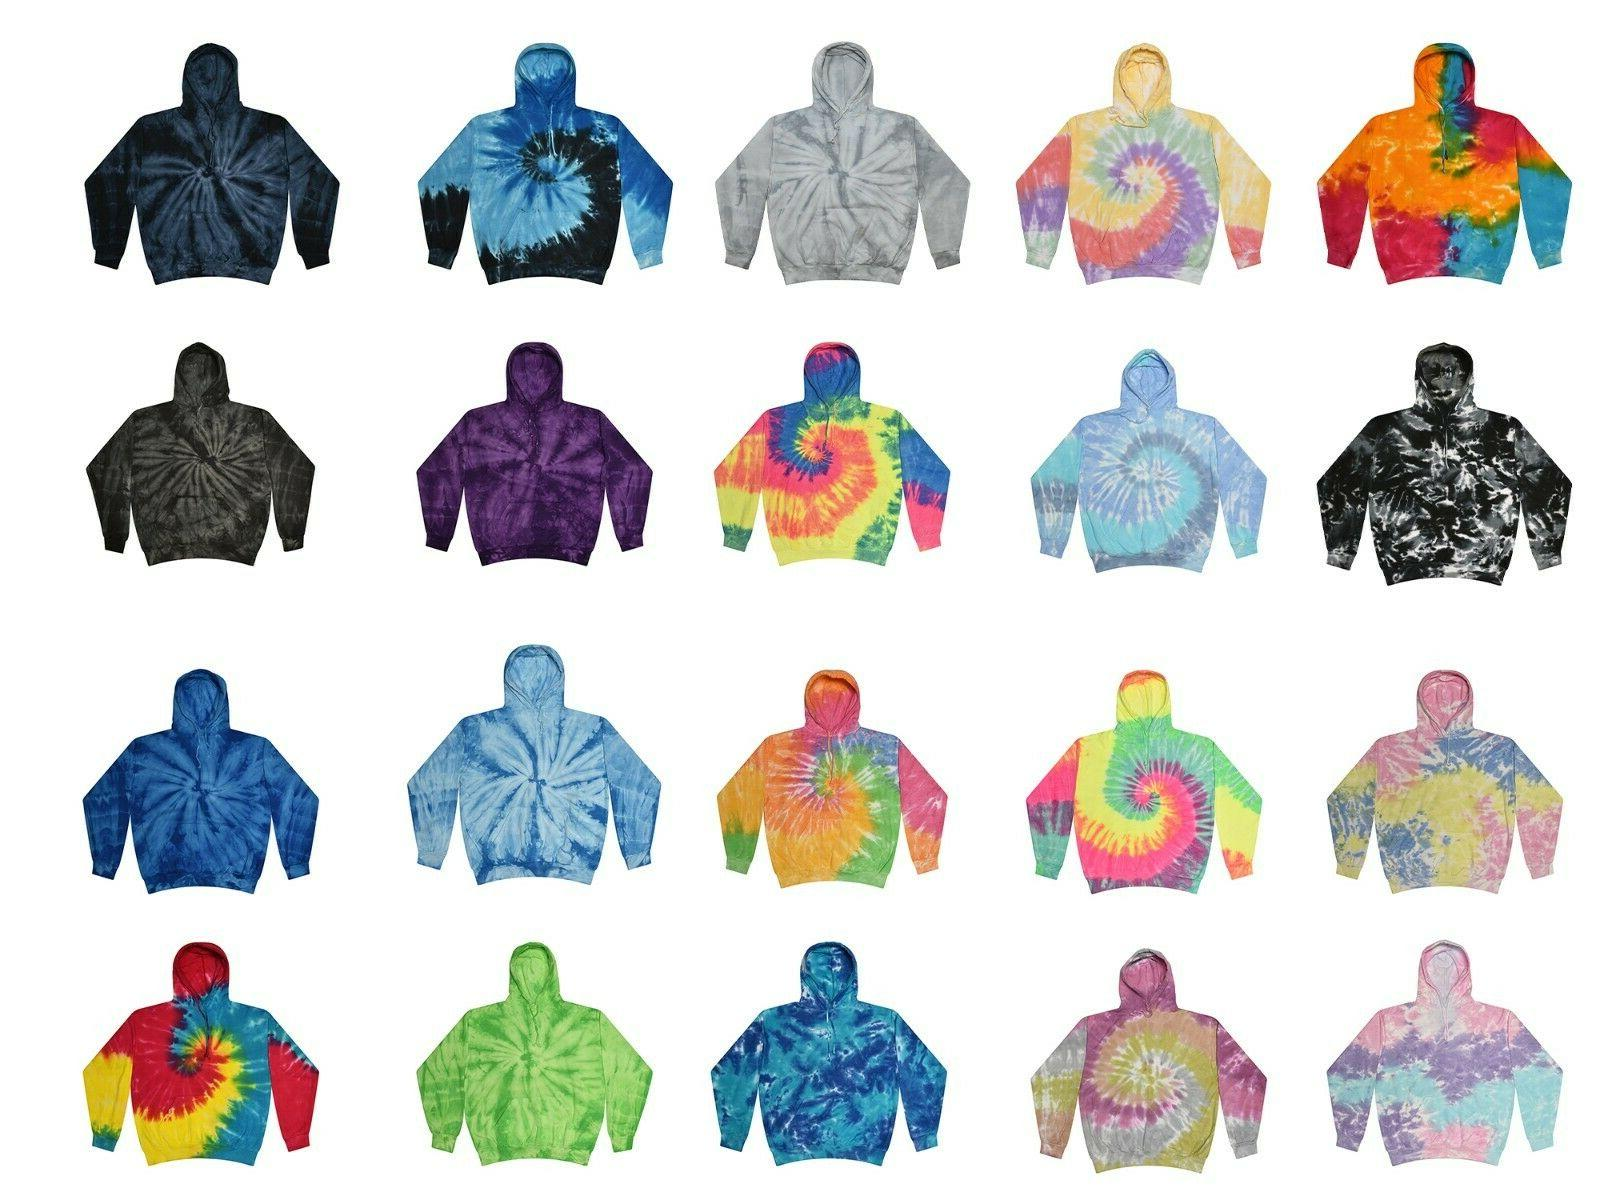 tie dye multi color hoodies adult s